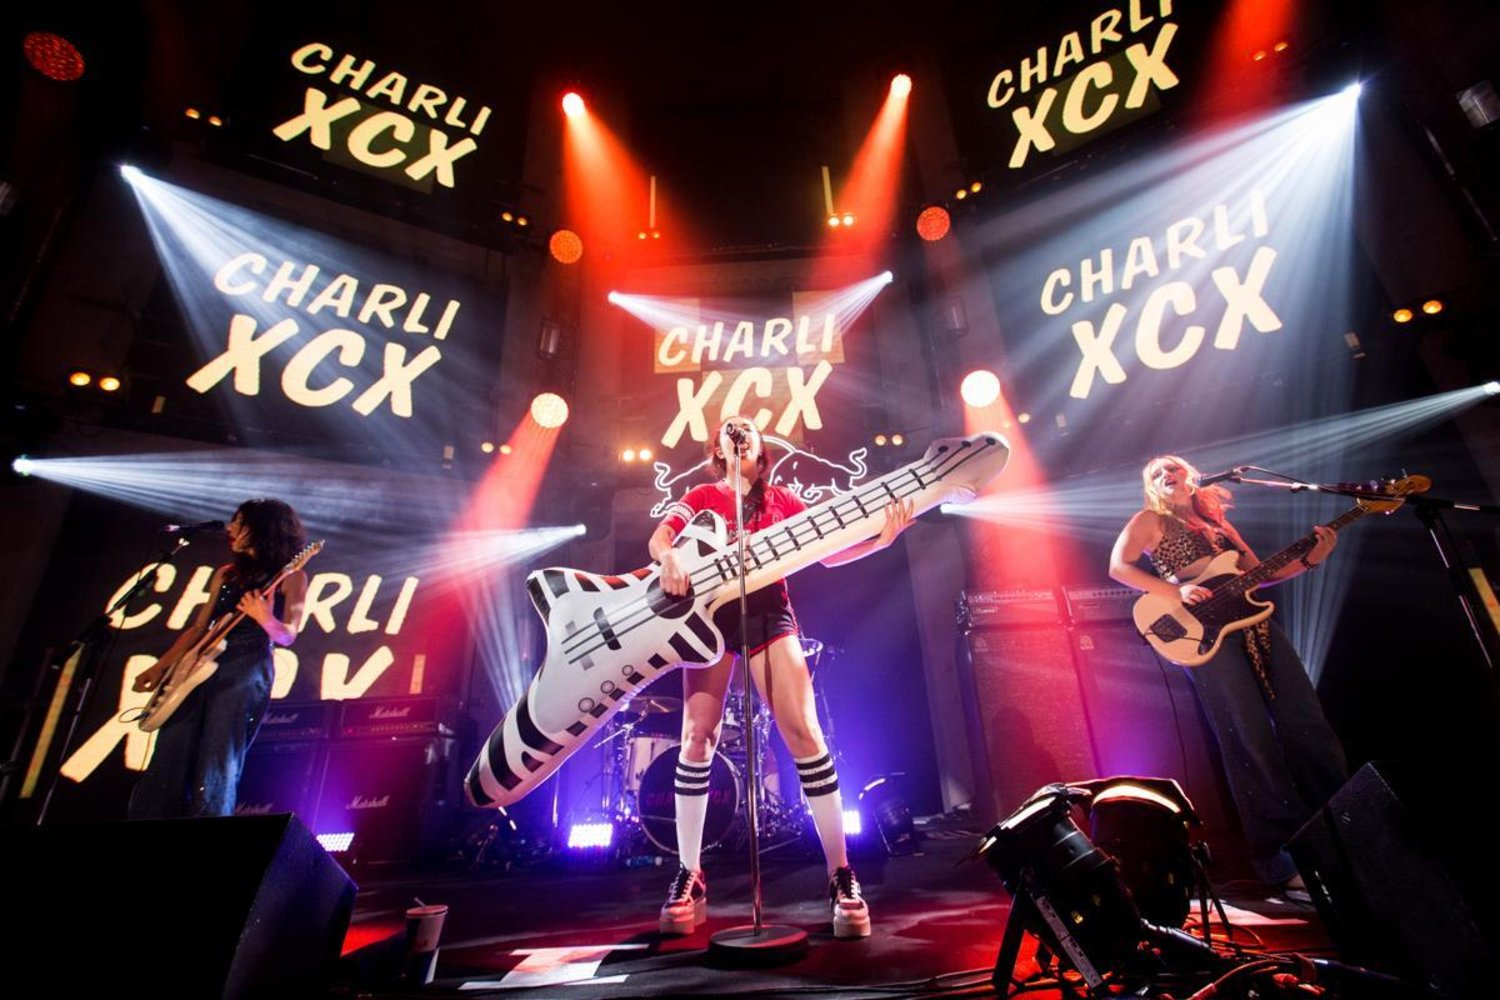 Charli xcx concert inflatable guitar prop being used by the lead singer